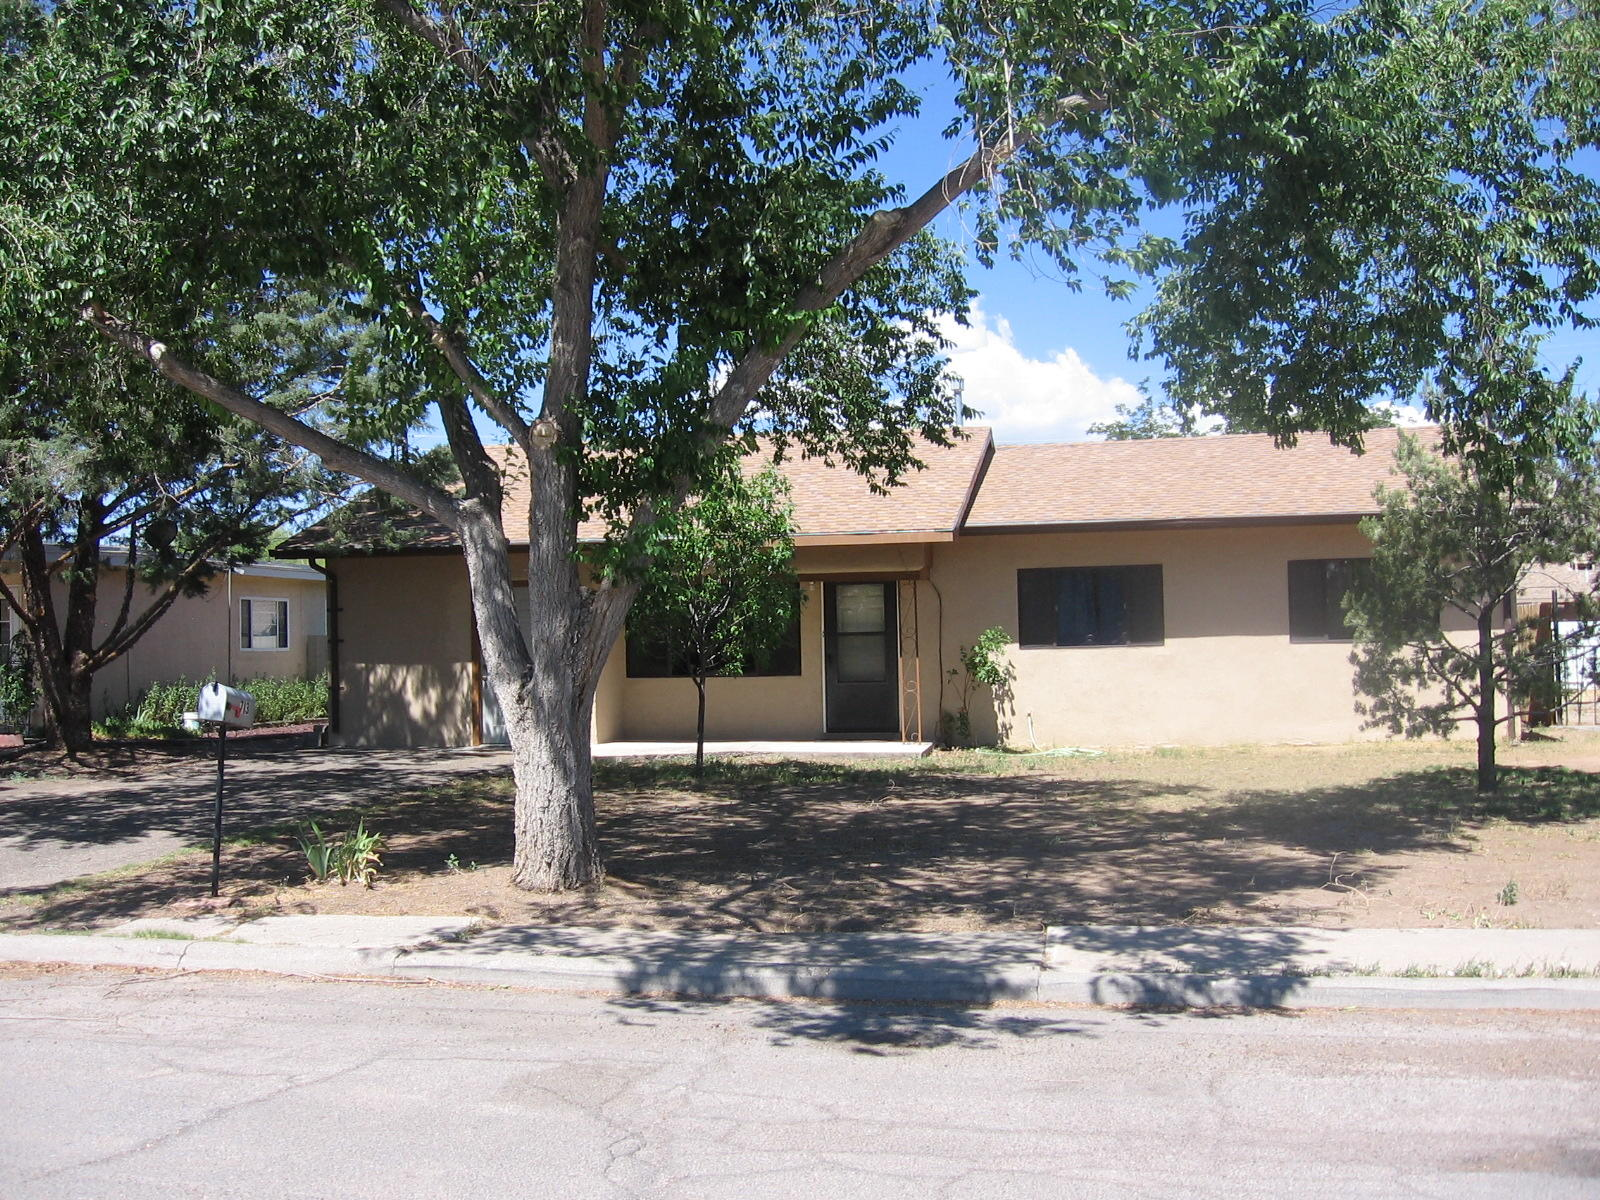 Very well maintained home near NMT campus. 4 bedrooms, 2 baths, French doors going into family room which has a pellet stove, new kitchen floor and good looking carpet.  Ceiling fans. Fenced backyard with storage shed. Appliances included.  At this price this exceptional house should sell quickly...  so make an appointment to see today!